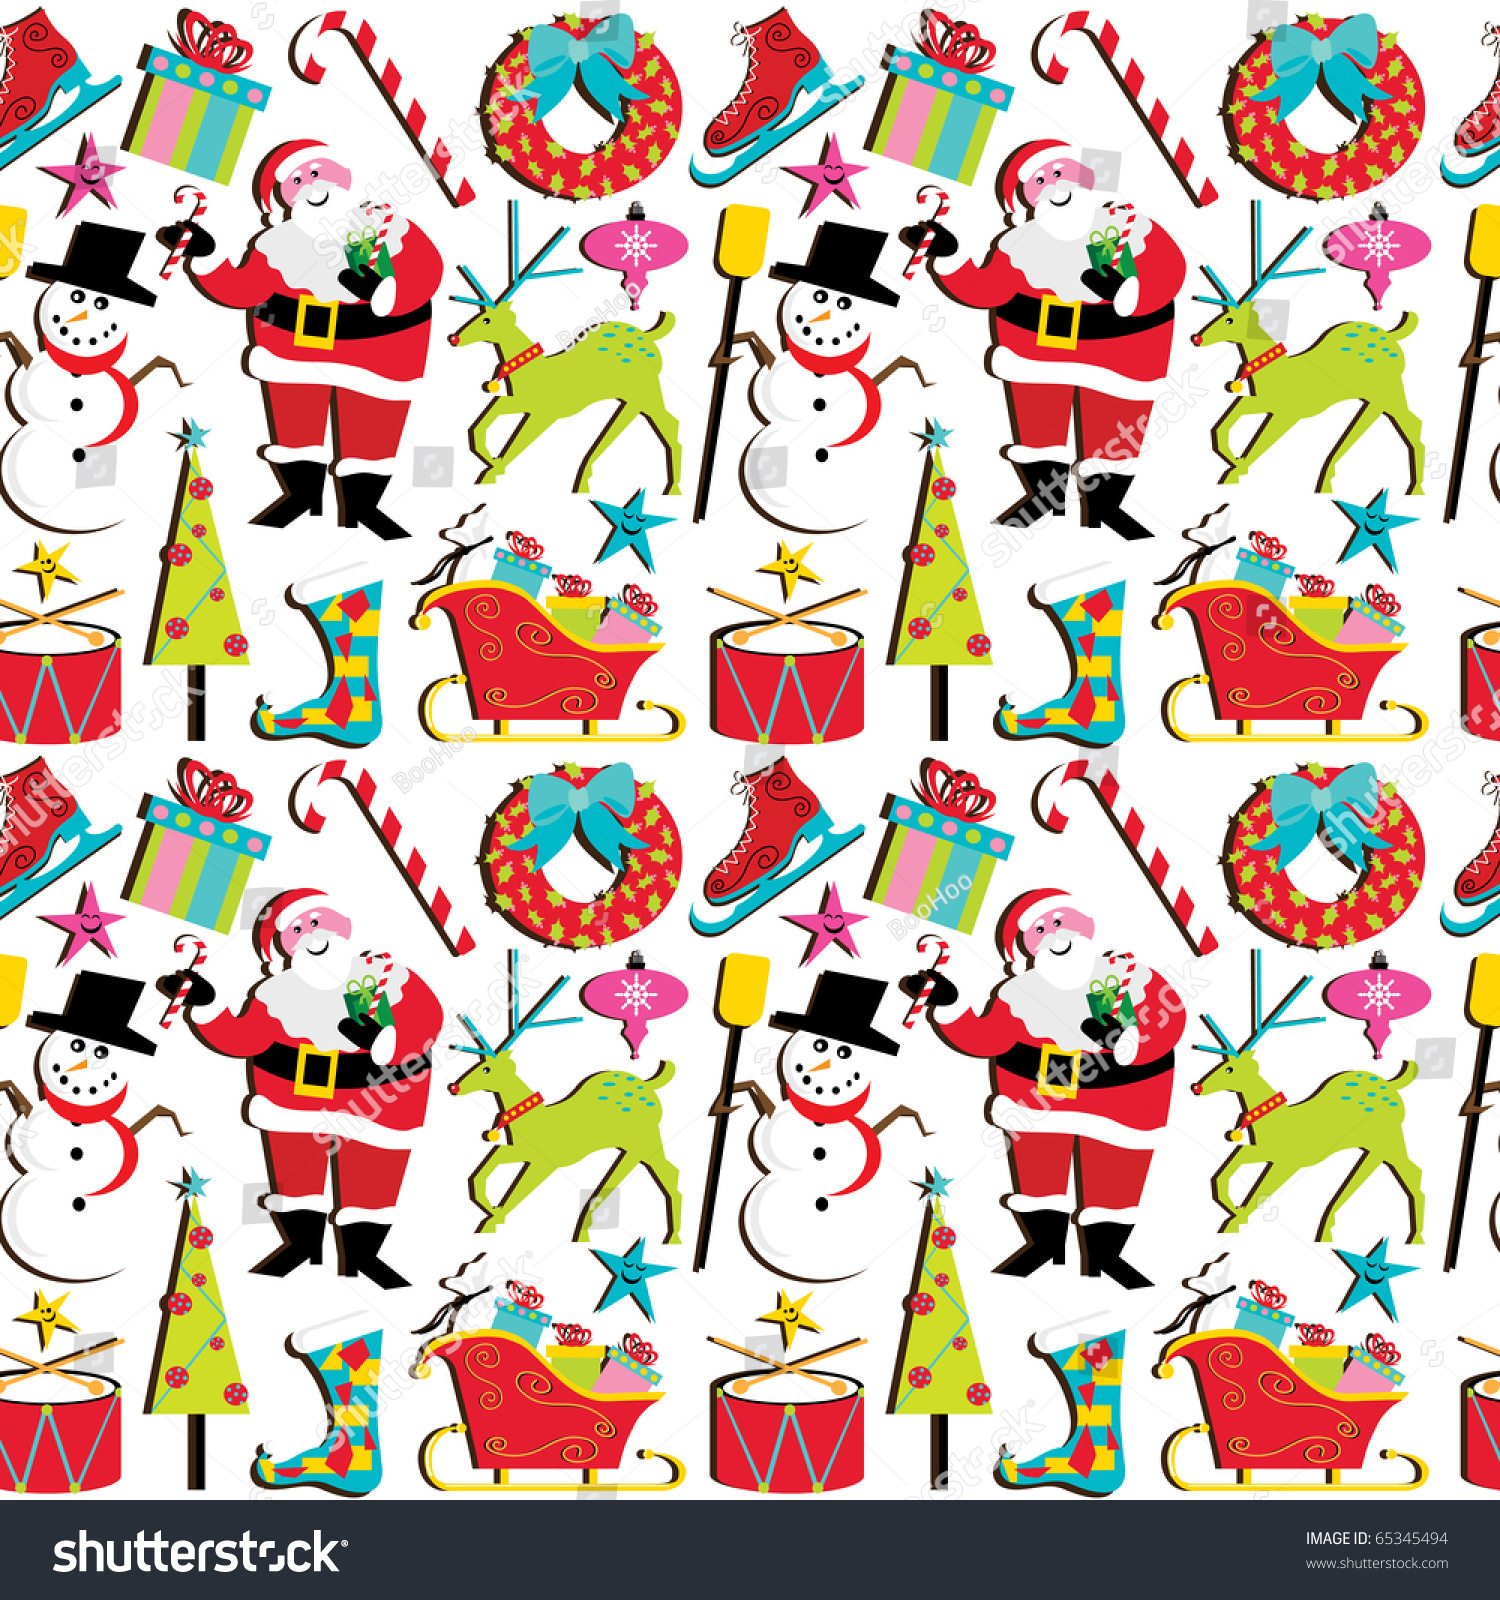 Cute Retro Inspired Christmas Clipart Wallpaper, Isolated